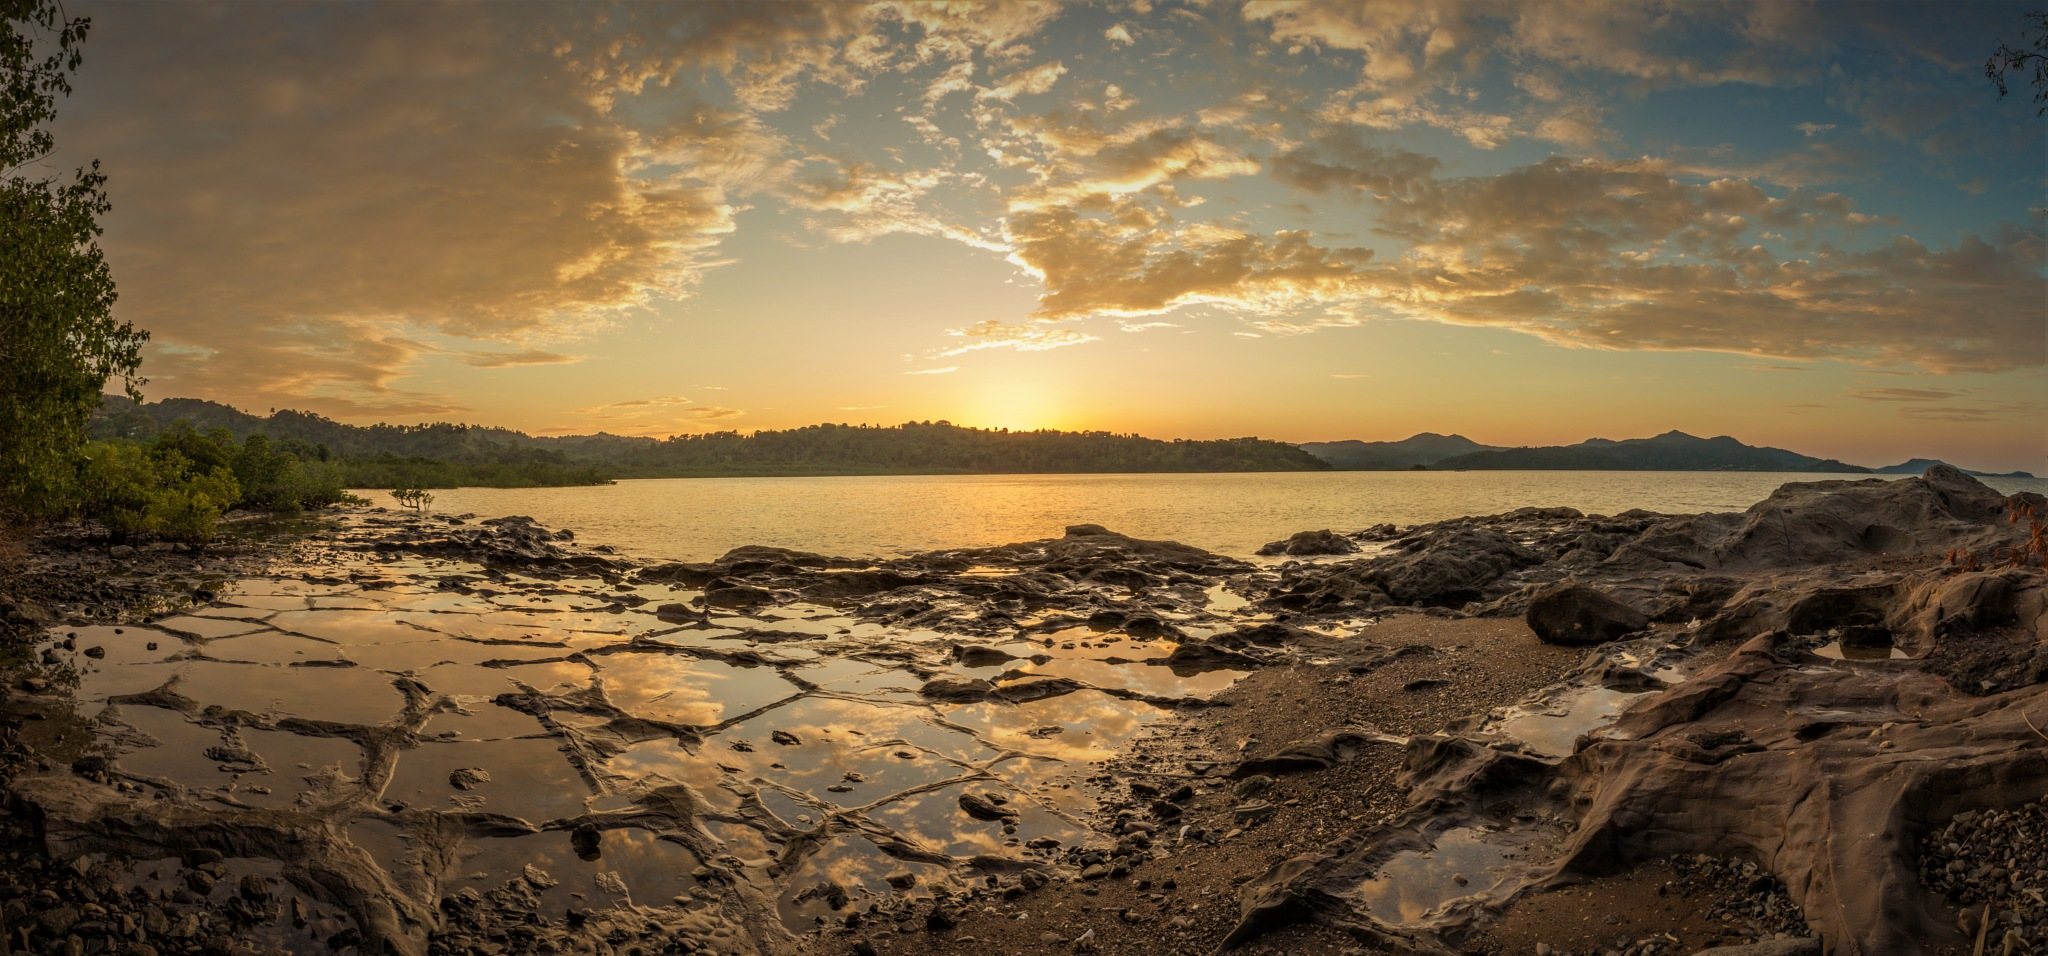 Panoramic picture of the sunset in Longoni, Mayotte by Nicolas F.